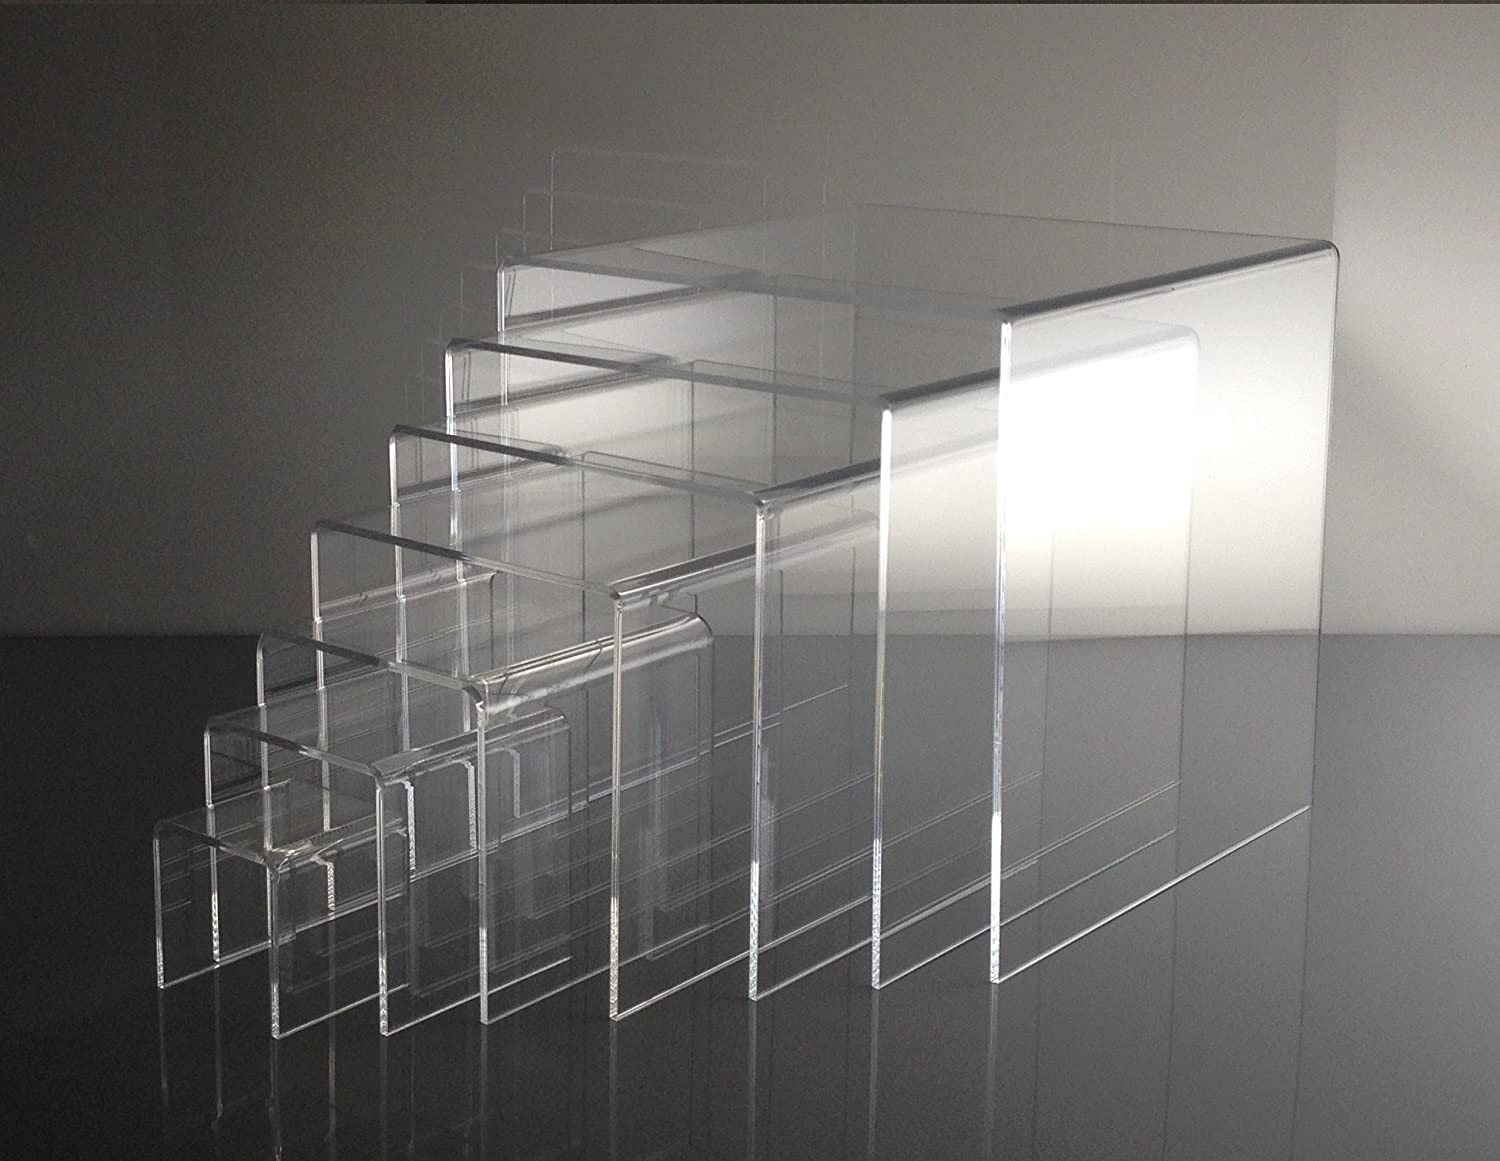 T'z Tagz Brand Gifts Clear Acrylic Nesting Set 7-2in-8i of Riser All stores are sold Table